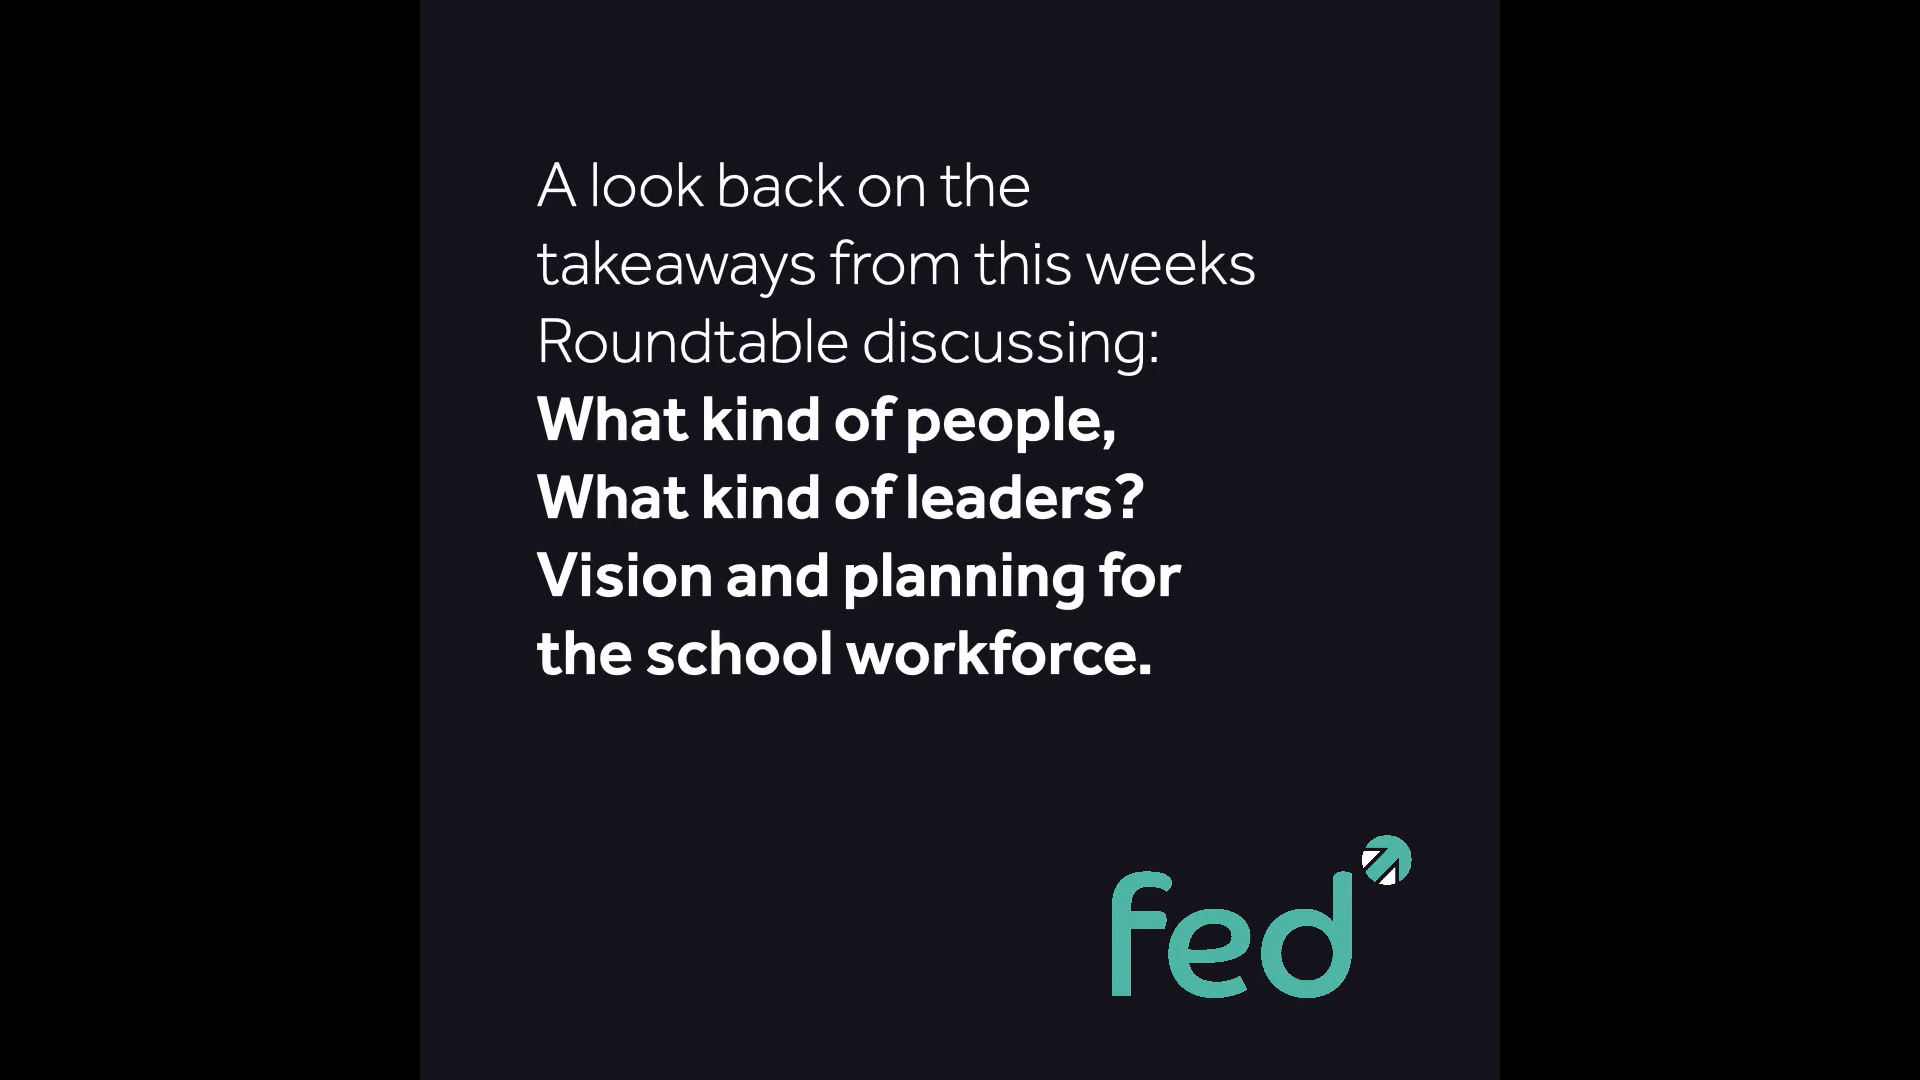 Roundtable Takeaways - What kind of people, what kind of leaders? Vision and planning for the school workforce